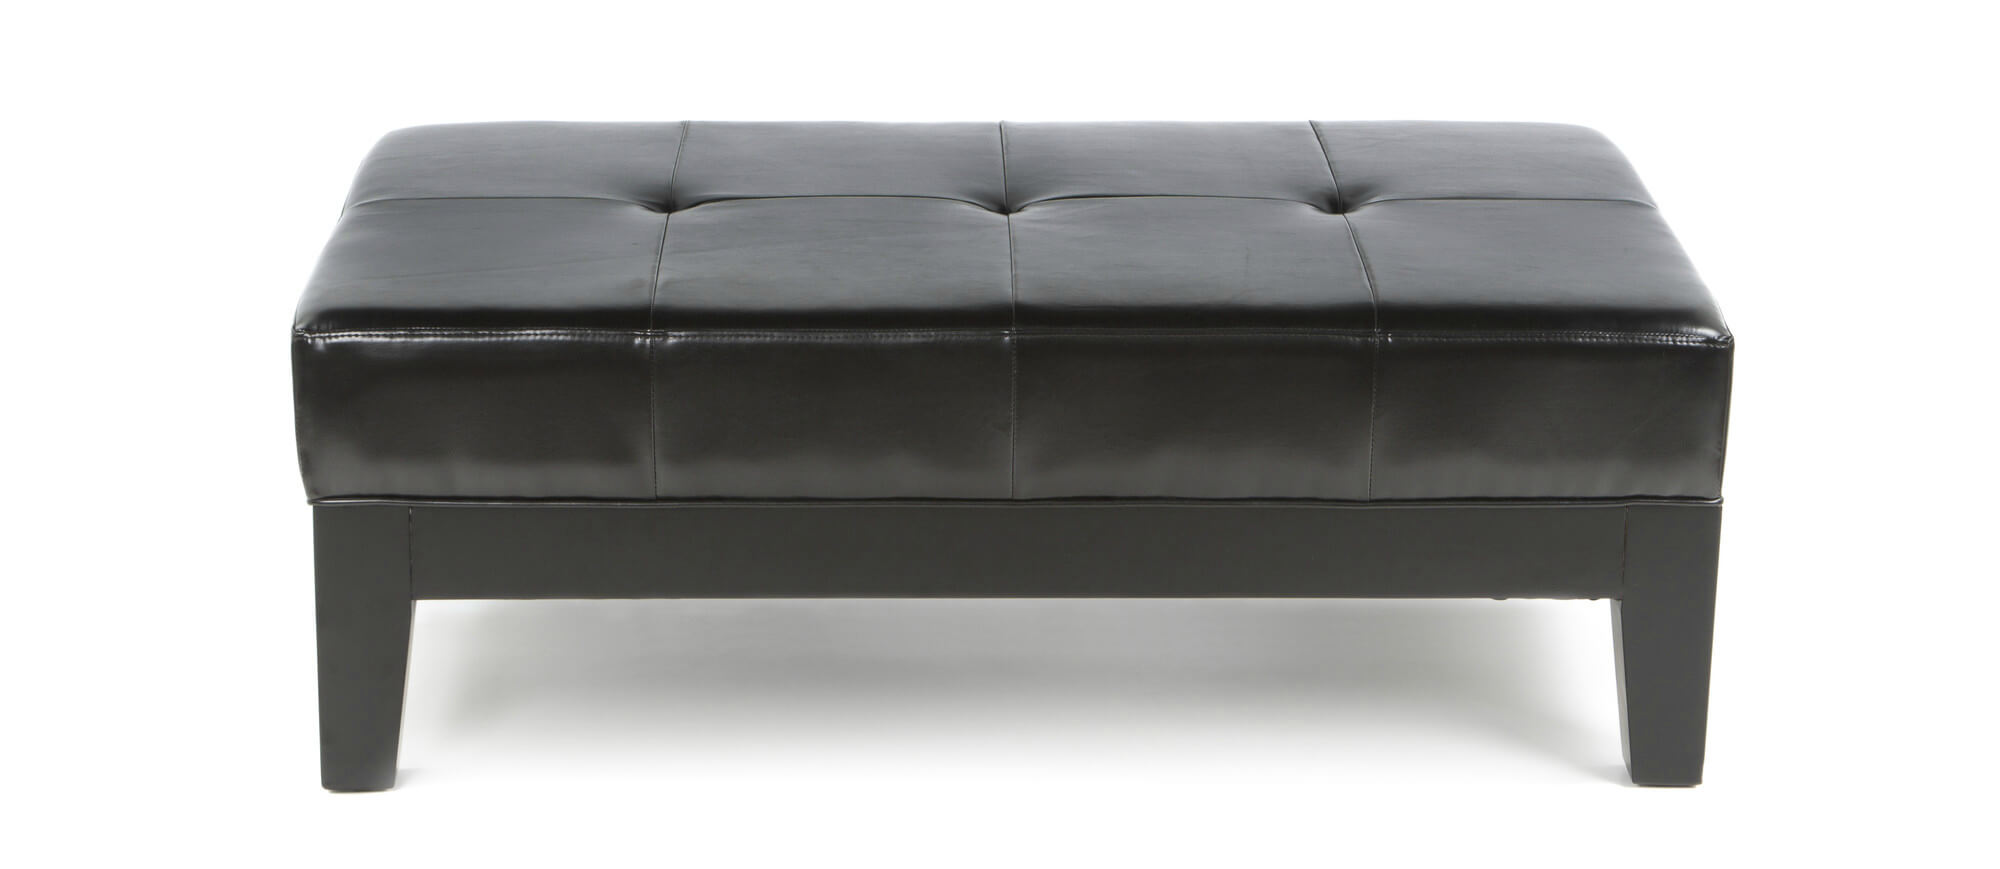 this dark leather bench seating ottoman from wholesale interiors features a broad button tufted cushion